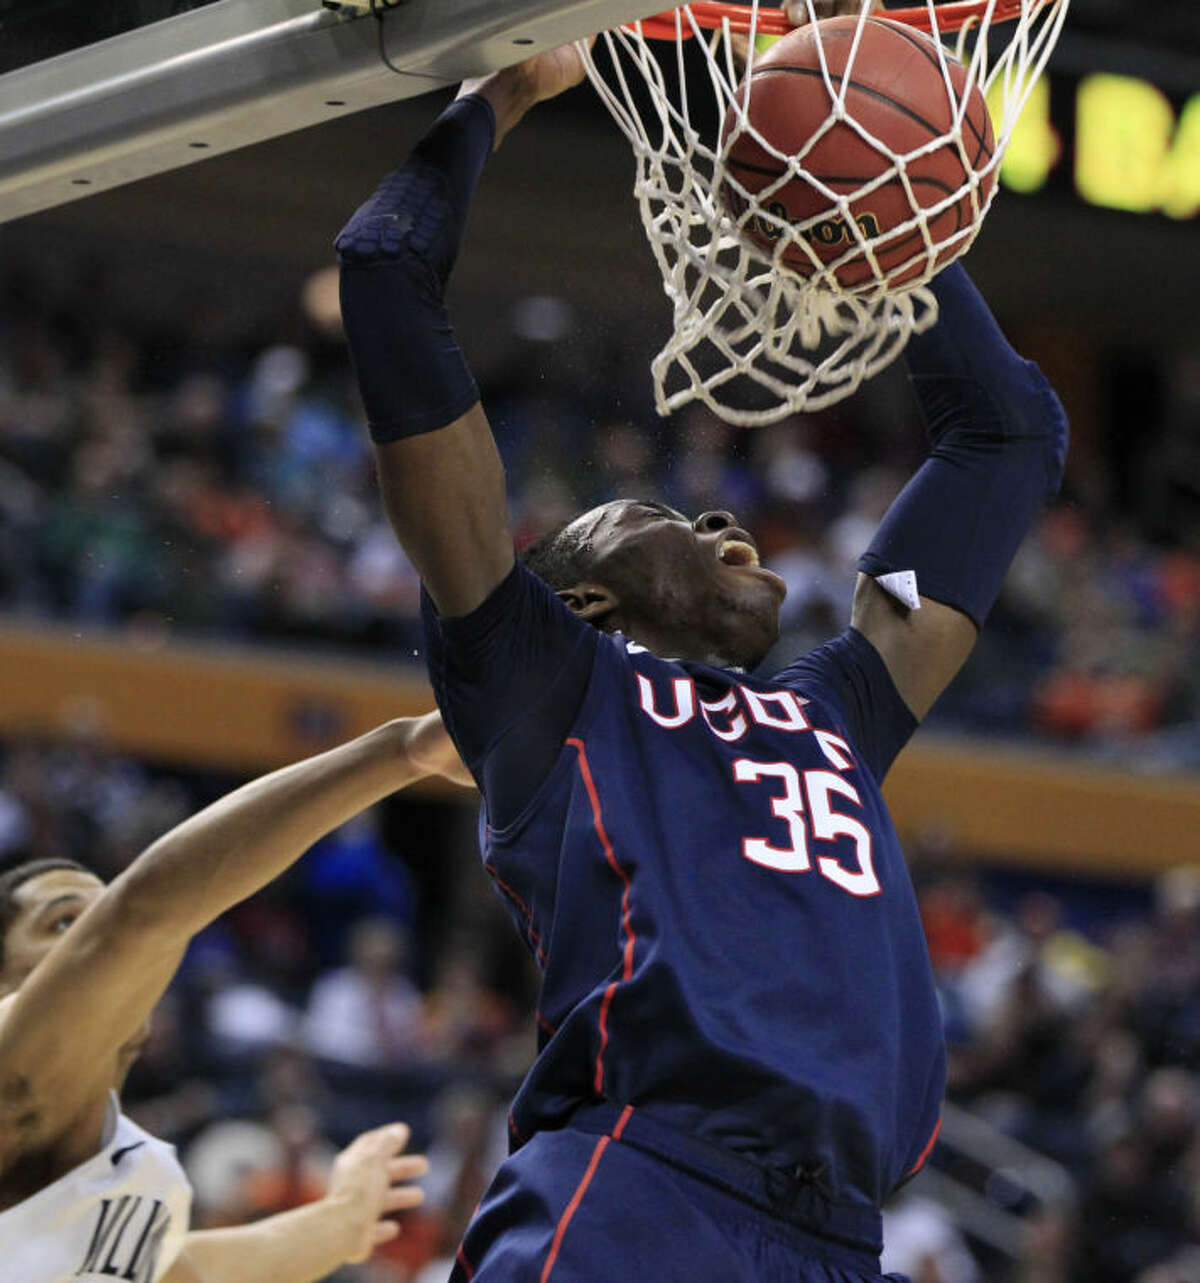 UConn's Amida Brimah throws down a dunk against Villanova during the second half of the third-round game in the men's NCAA college basketball tournament at the First Niagara Center, Saturday, March 22, 2014. (AP Photo/The Buffalo News, Harry Scull Jr.)